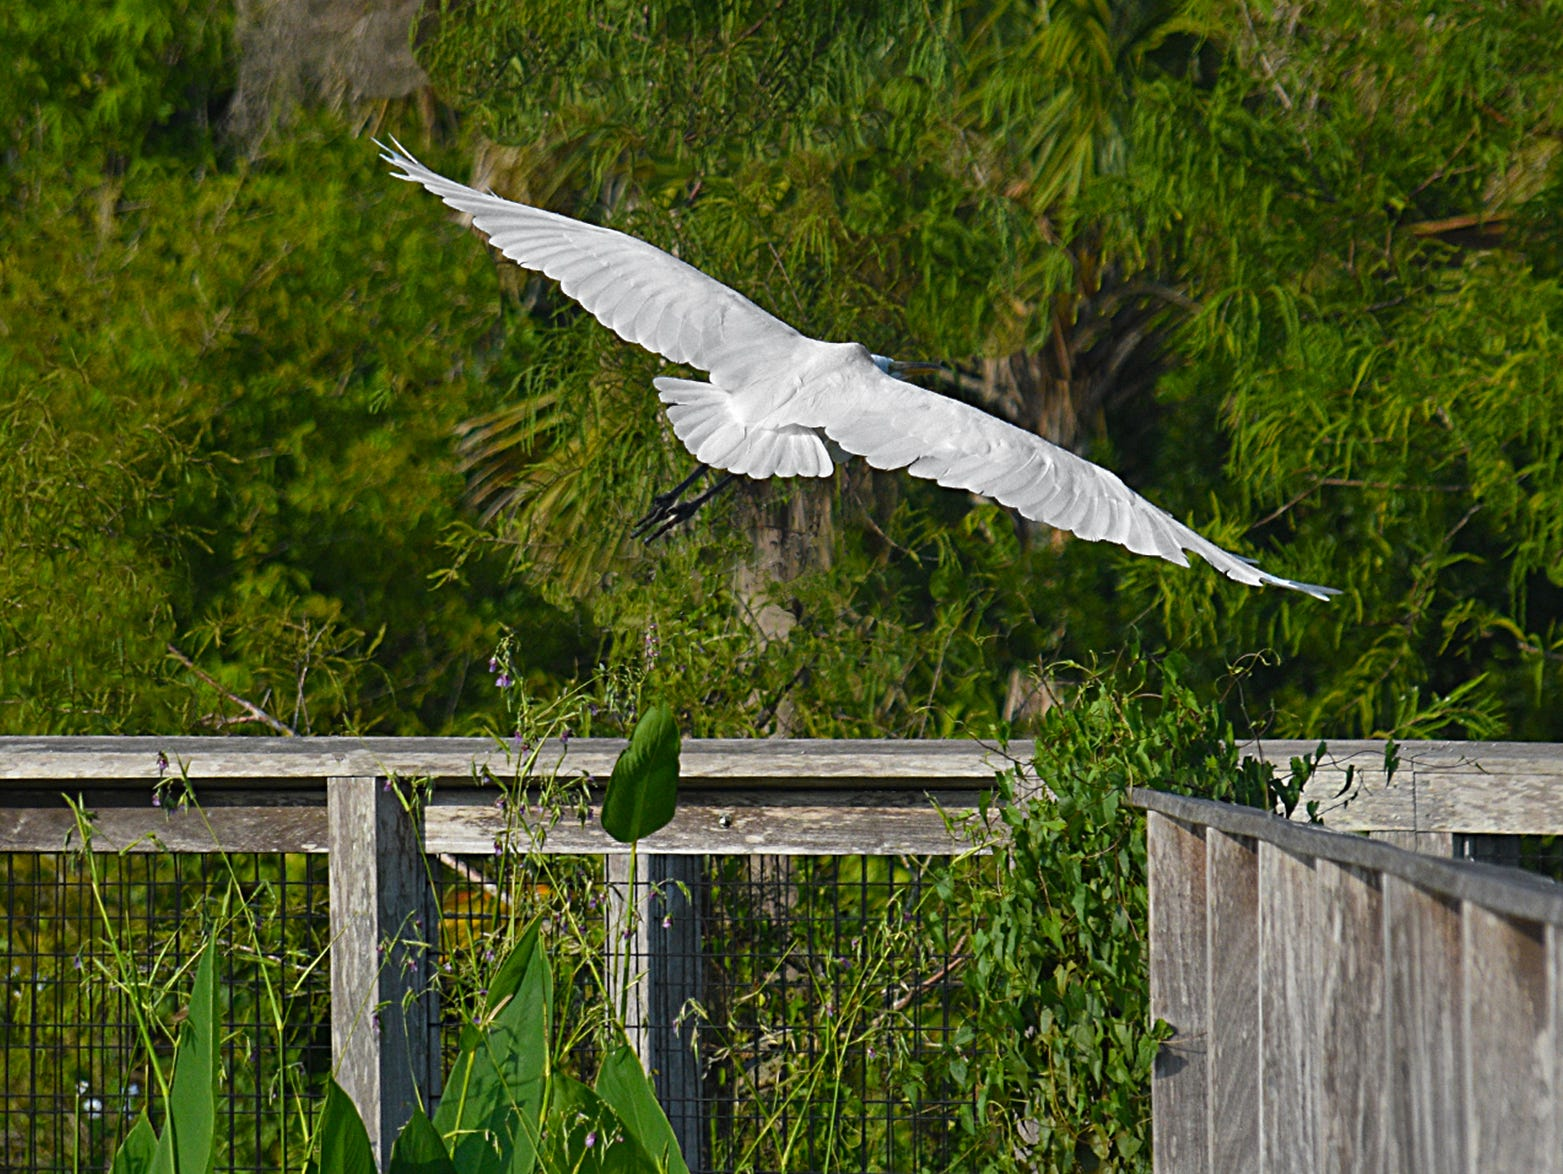 A Great White Egret soars over the boardwalk at the Fred W. Coyle Freedom Park located near downtown Naples.